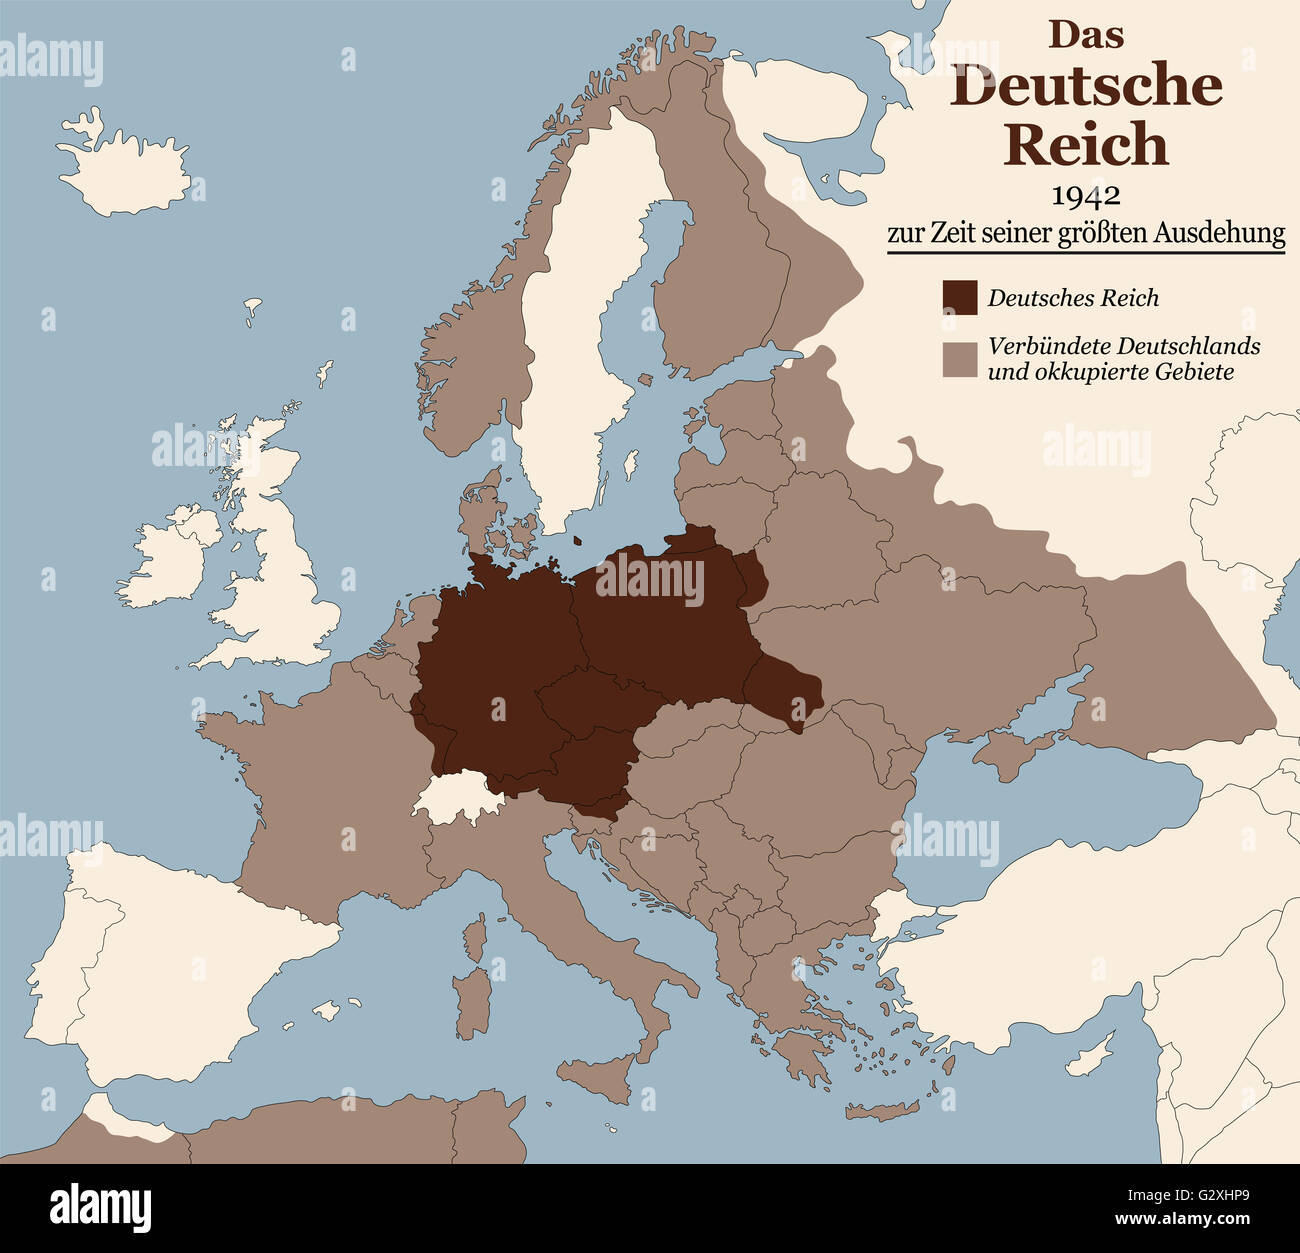 Nazi Germany Third Reich At Its Greatest Extent In Map Of - Third reich map 1944